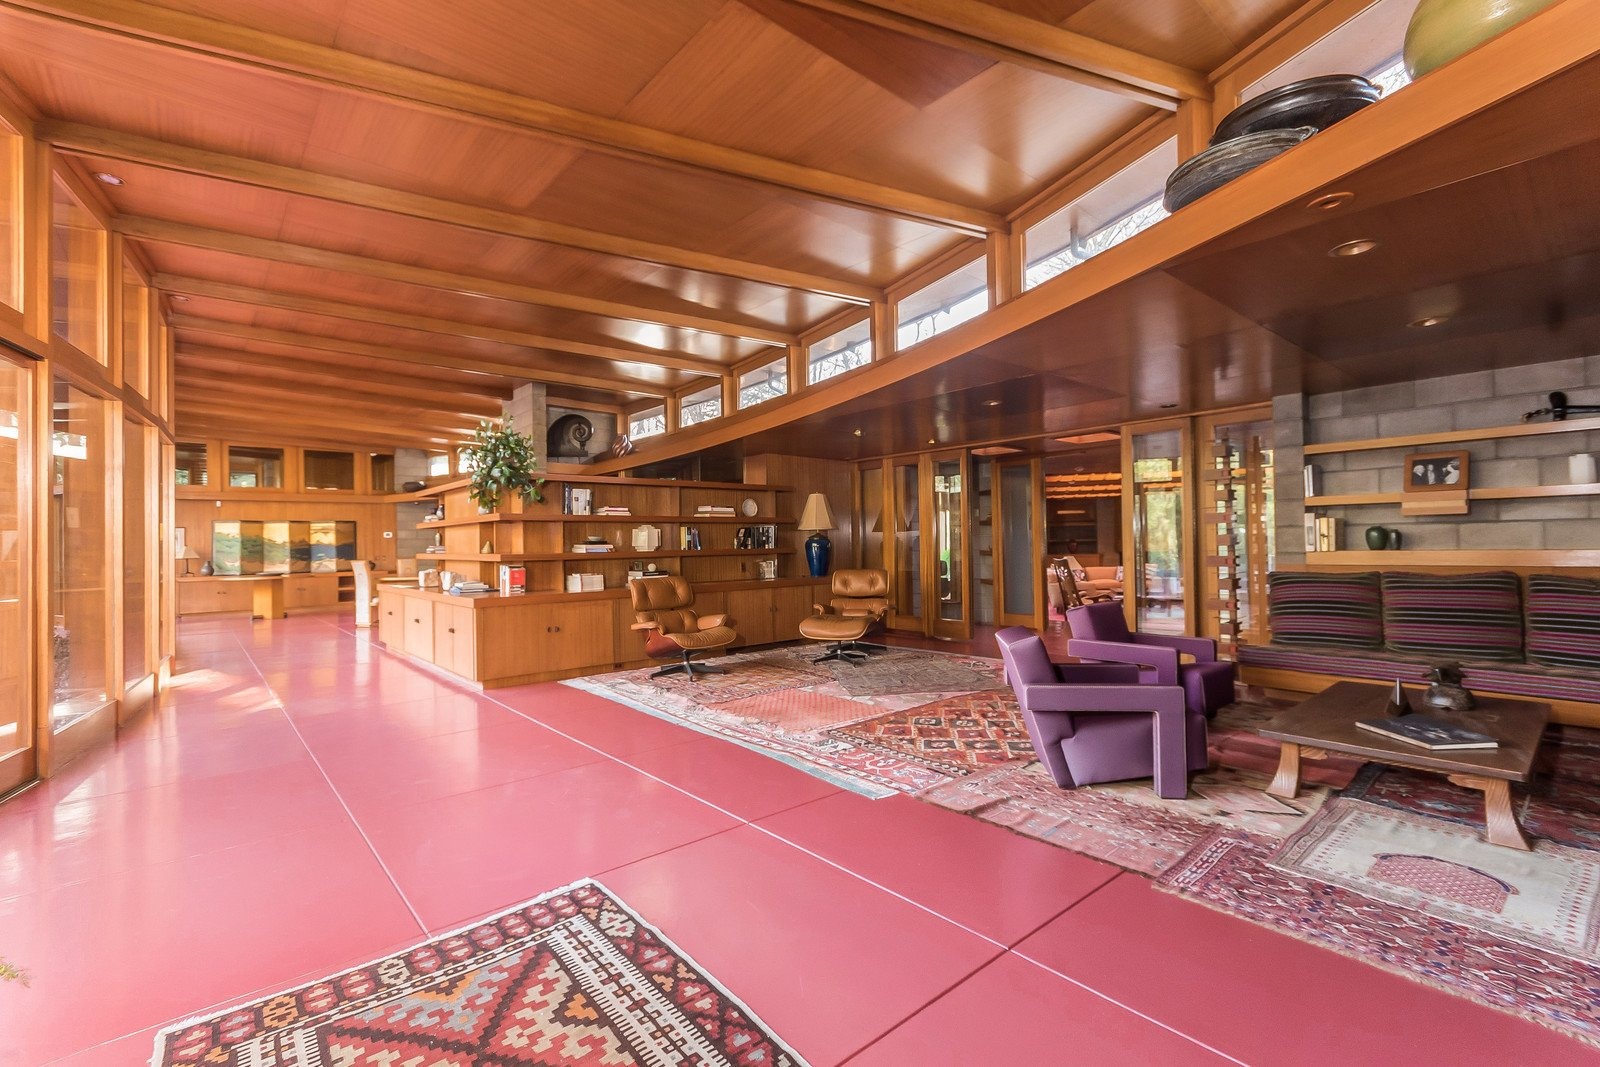 The red flooring that runs throughout the interior is Colorundum in Cherokee red, a color Wright loved to use in his projects. Jim Gricar of Houlihan Lawrence explains that the flooring is made up of a series of minerals that have a low freezing point, which makes it difficult to crack.   Tirranna by Dwell